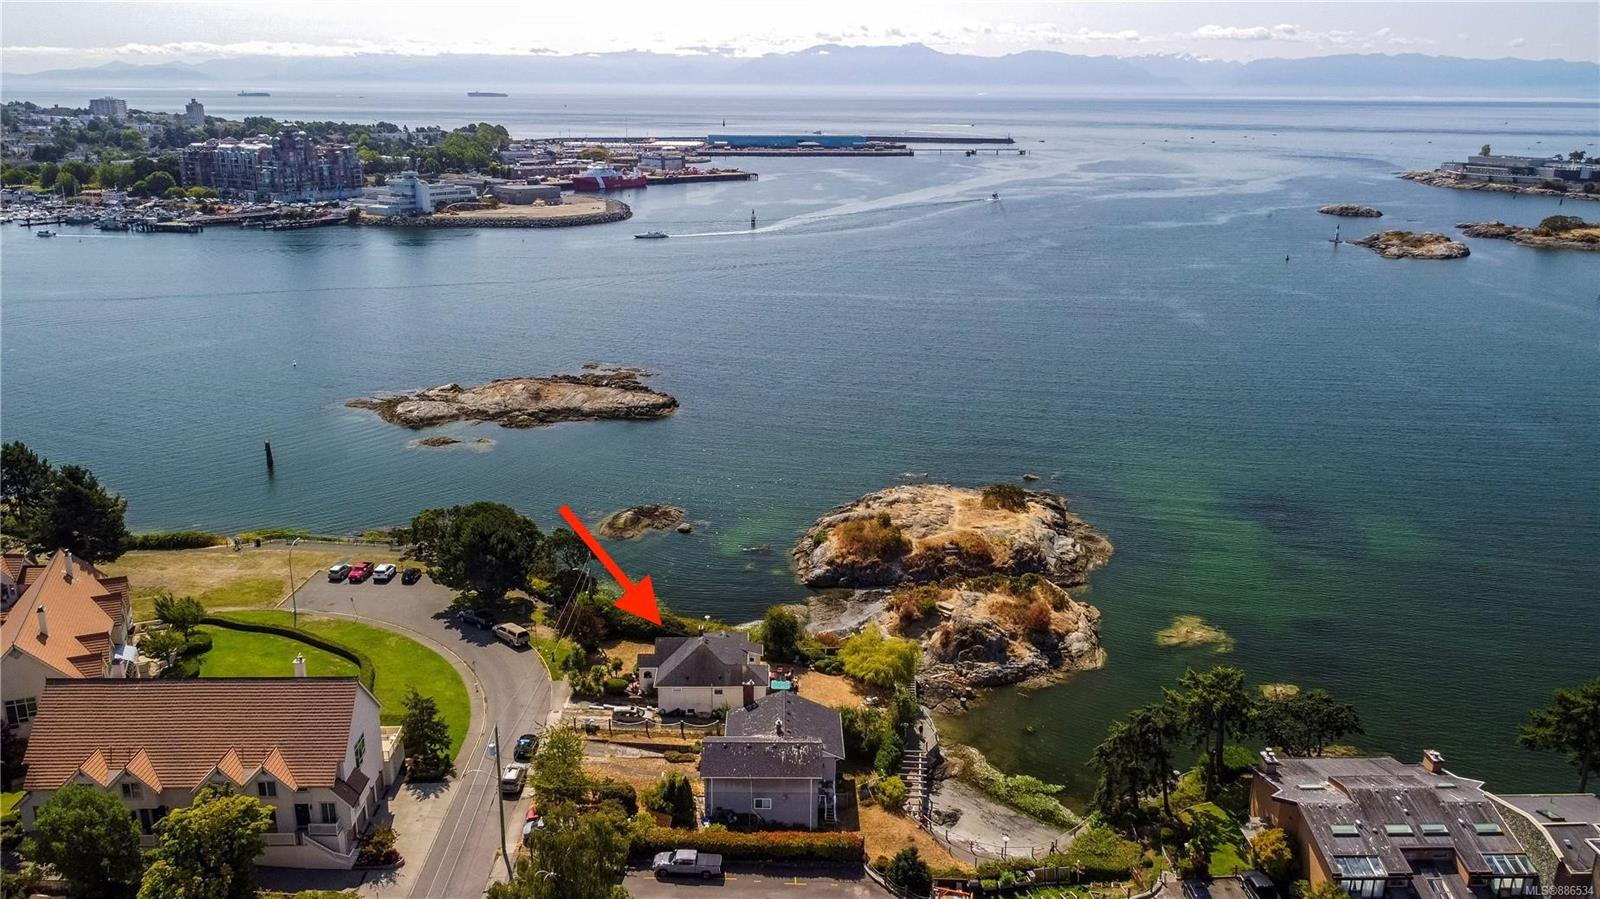 Attention Builders and Developers! Here is a RARE opportunity to own two properties in the desirable Waterfront neighbourhood of Vic West. A fantastic location with South and West facing views with the Olympic mountains in the backdrop, beautiful sunsets, and the lights of the inner harbour! Walk along the sea walk to downtown, kayak from your door step, or just sit back and enjoy the endless oceans views! Properties like these do not come to the market very often. Must be sold in conjunction with 216 Robert St (206 Robert zoned R-2 and 216 Robert zoned R3-G). This is an incredible opportunity to own two of the last pieces of property in Victoria's Waterfront and should not be missed!